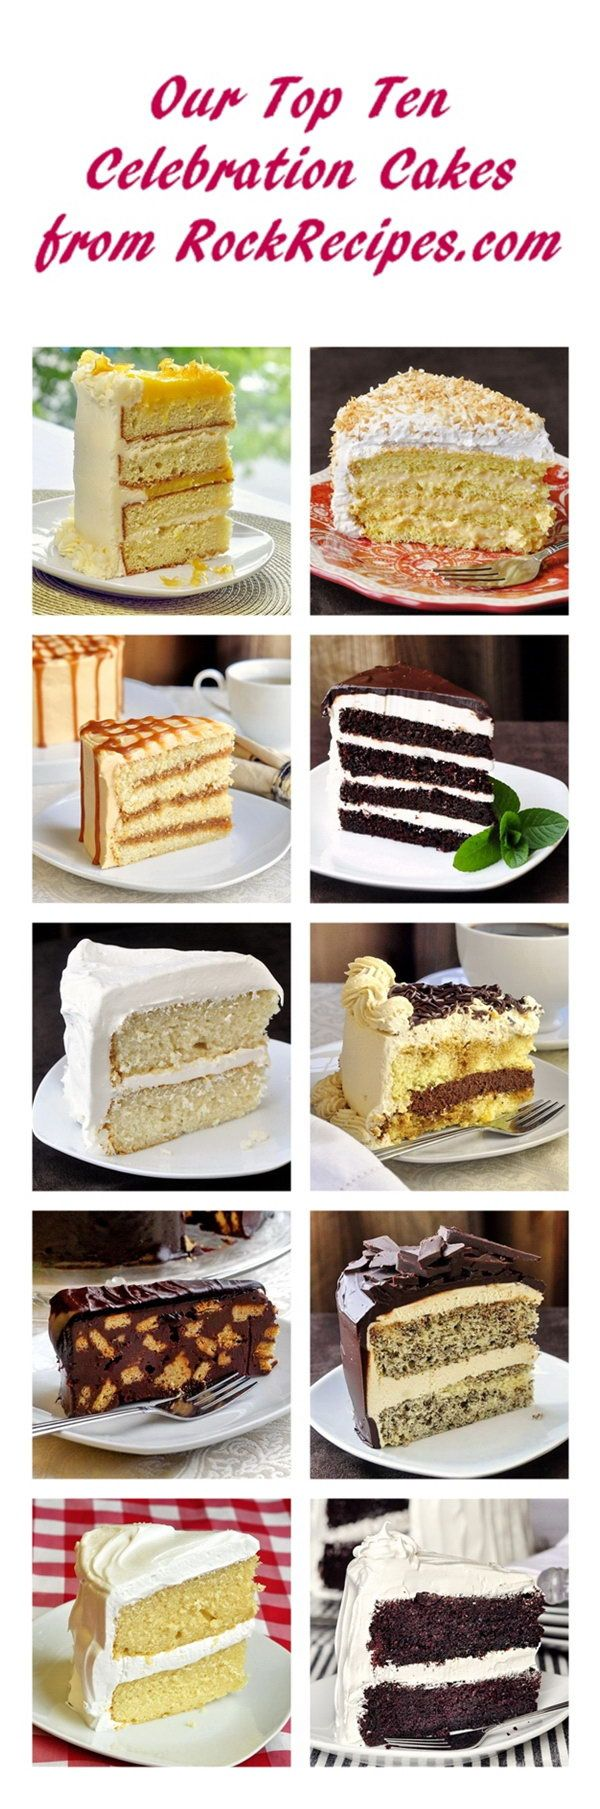 Who wants cake? Check out this drool-worthy collection!  `-:+><=~